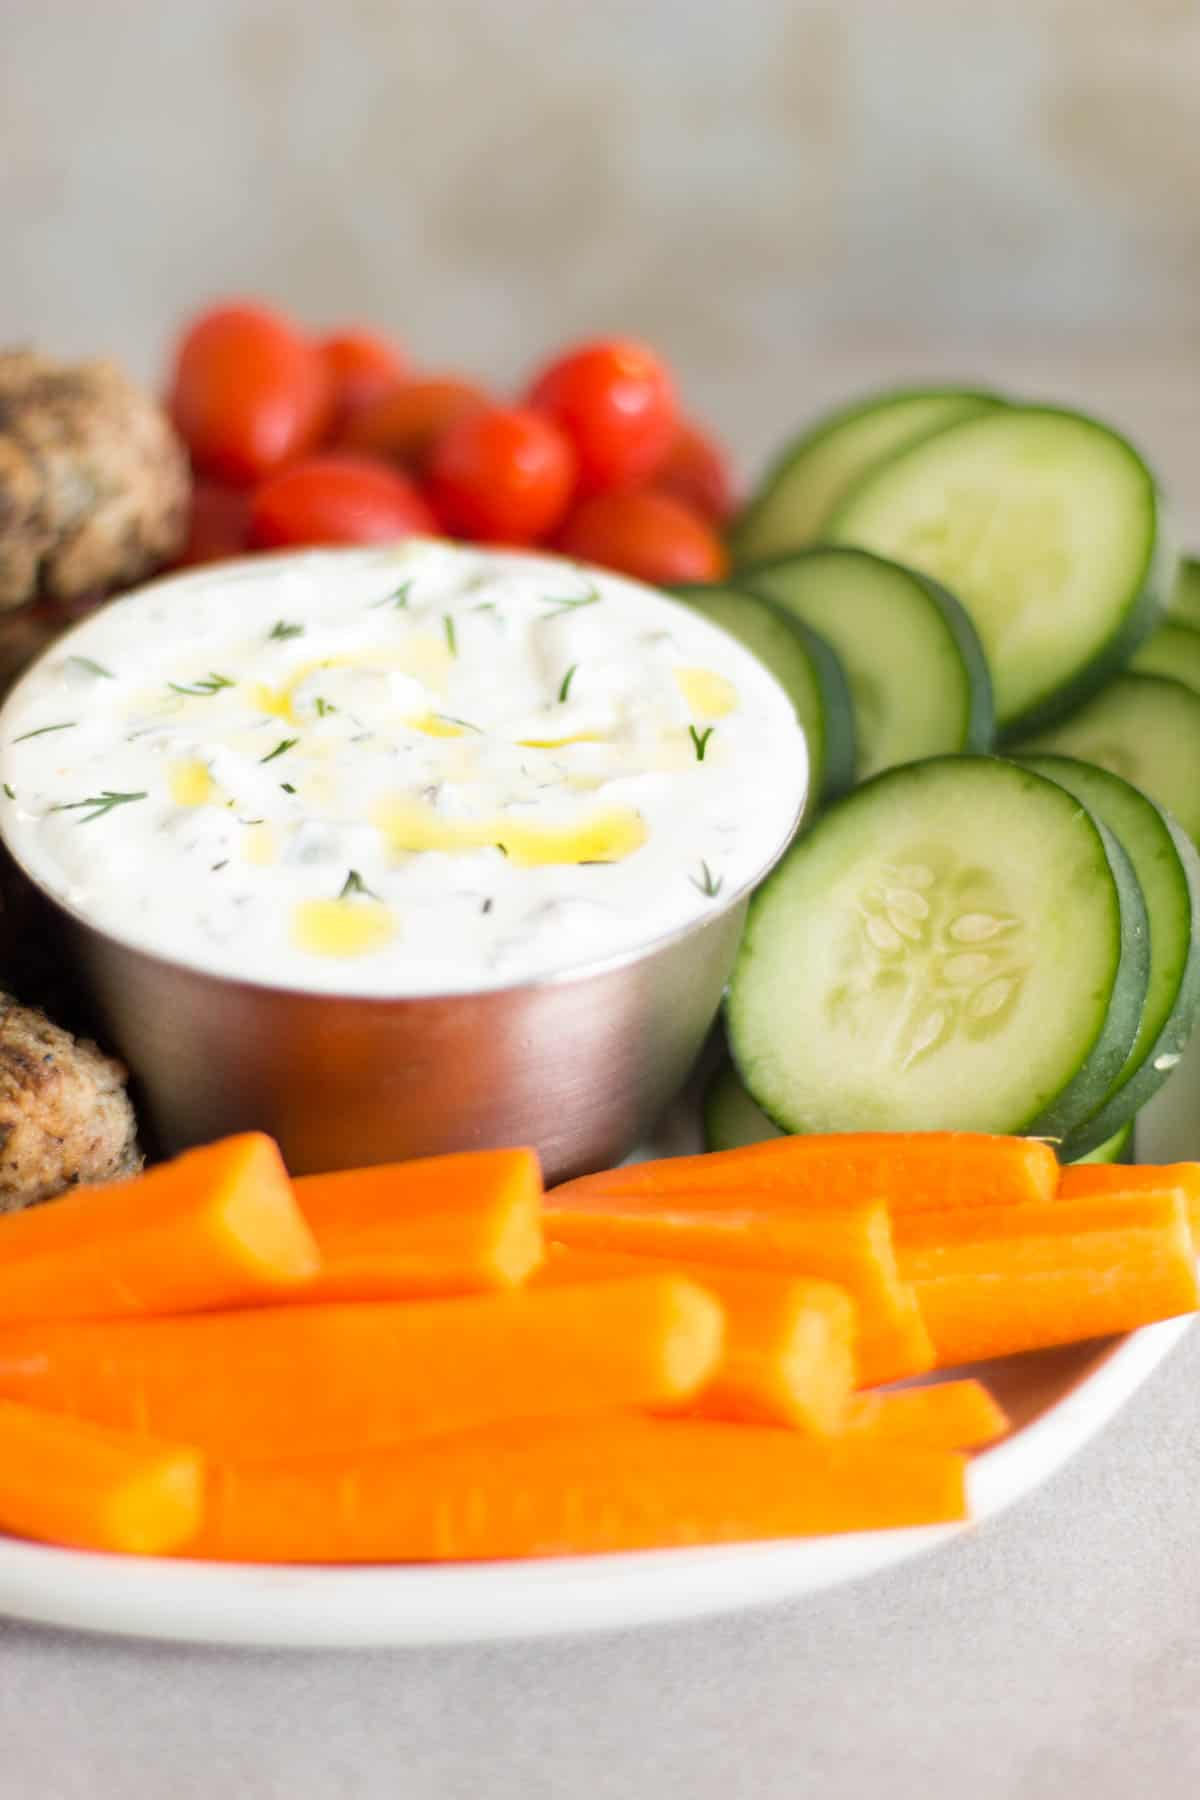 Fresh veggies and homemade tzatziki sauce